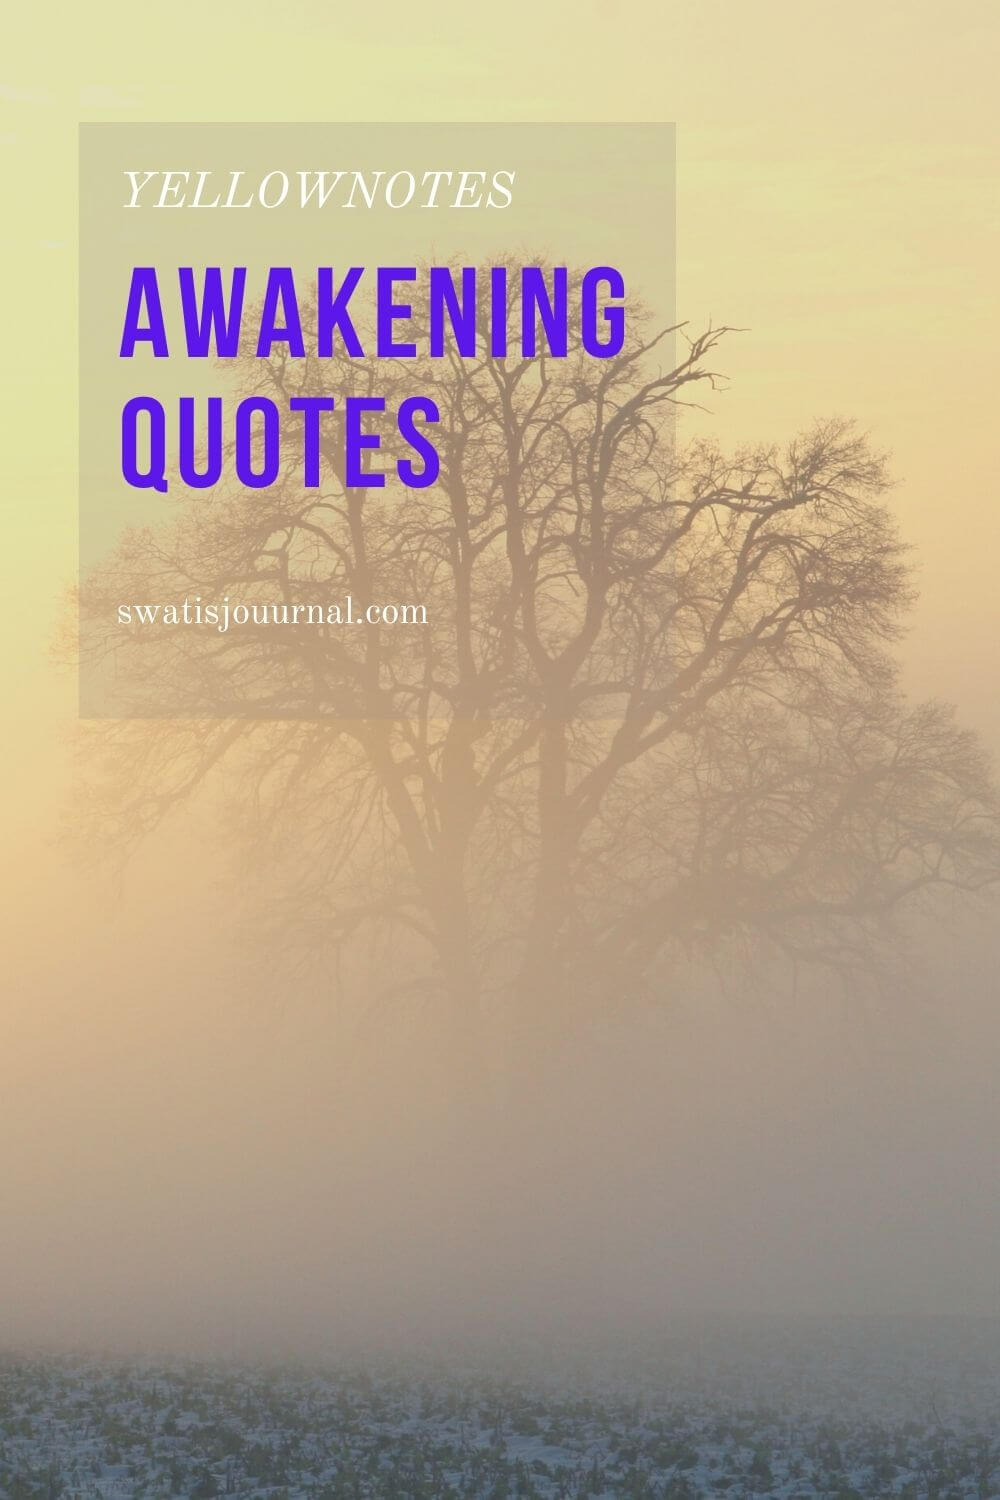 Yellownotes – Daily Quotes | Quote of the Week | August 2020 | Week 03 4.8 (6)